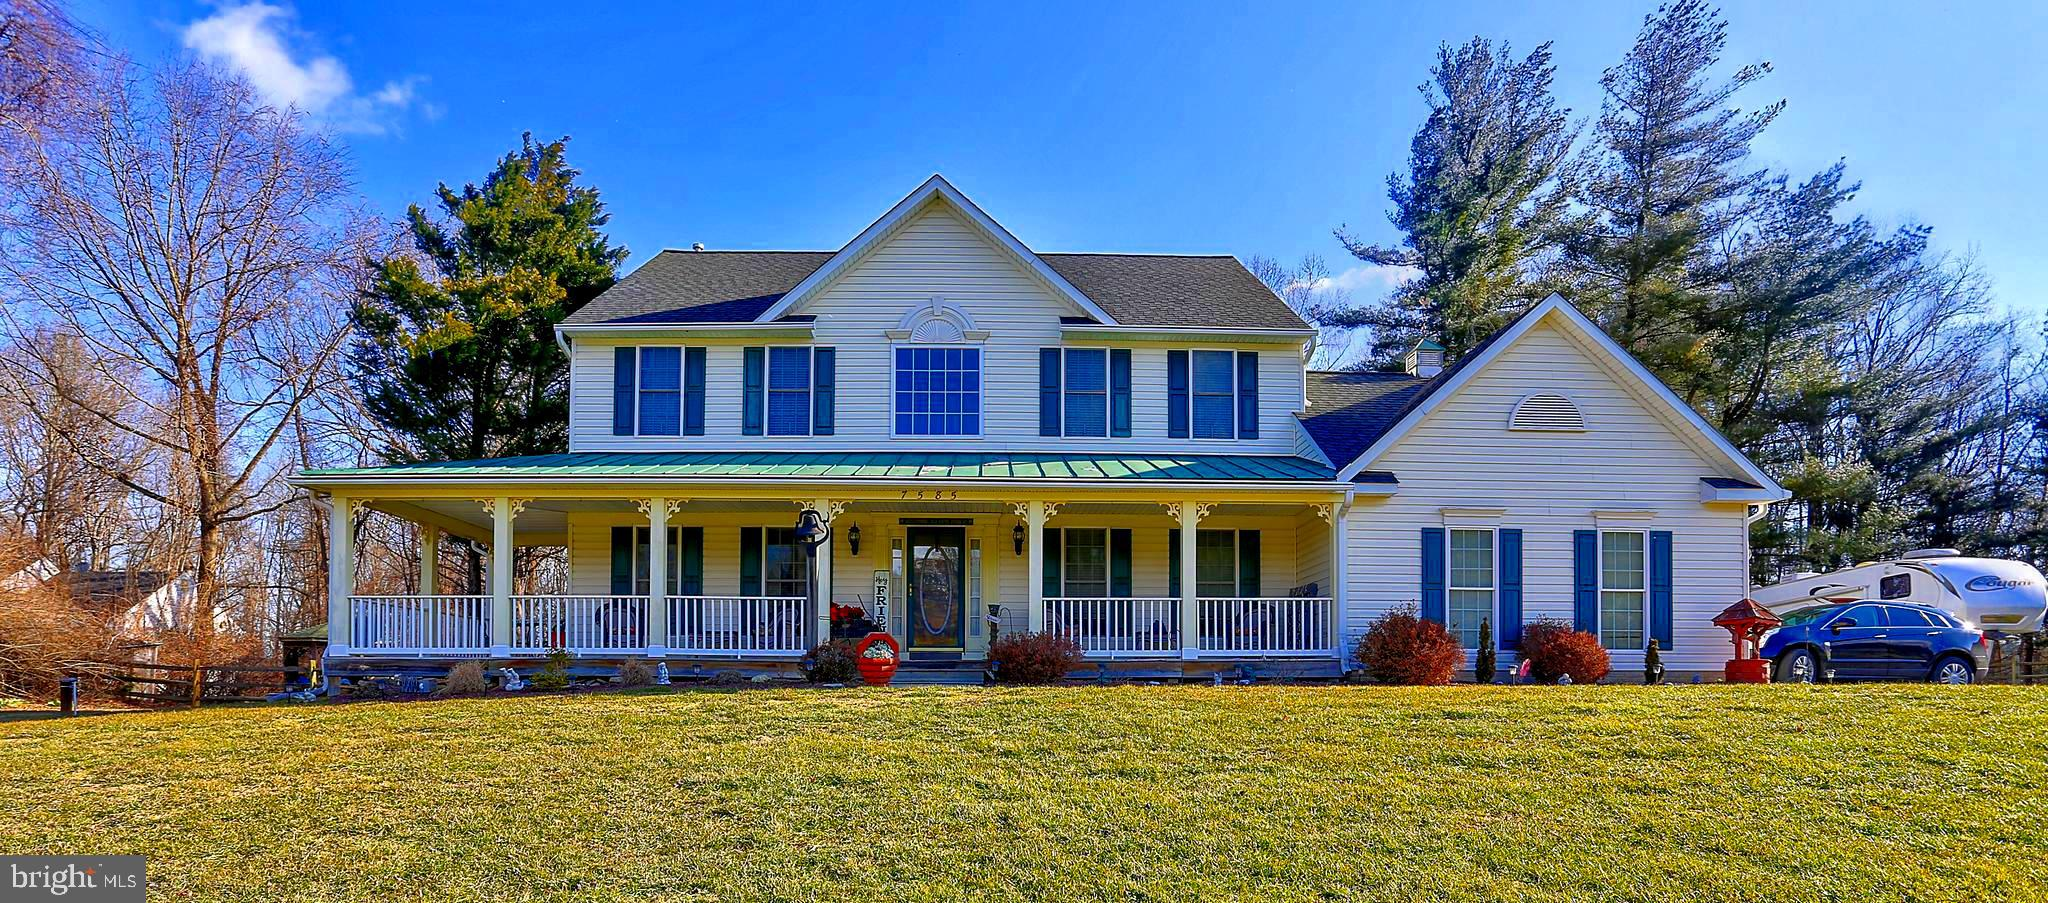 Gorgeous custom built home situated on 2 acres in Carroll County.  Enjoy this summer in  you persona